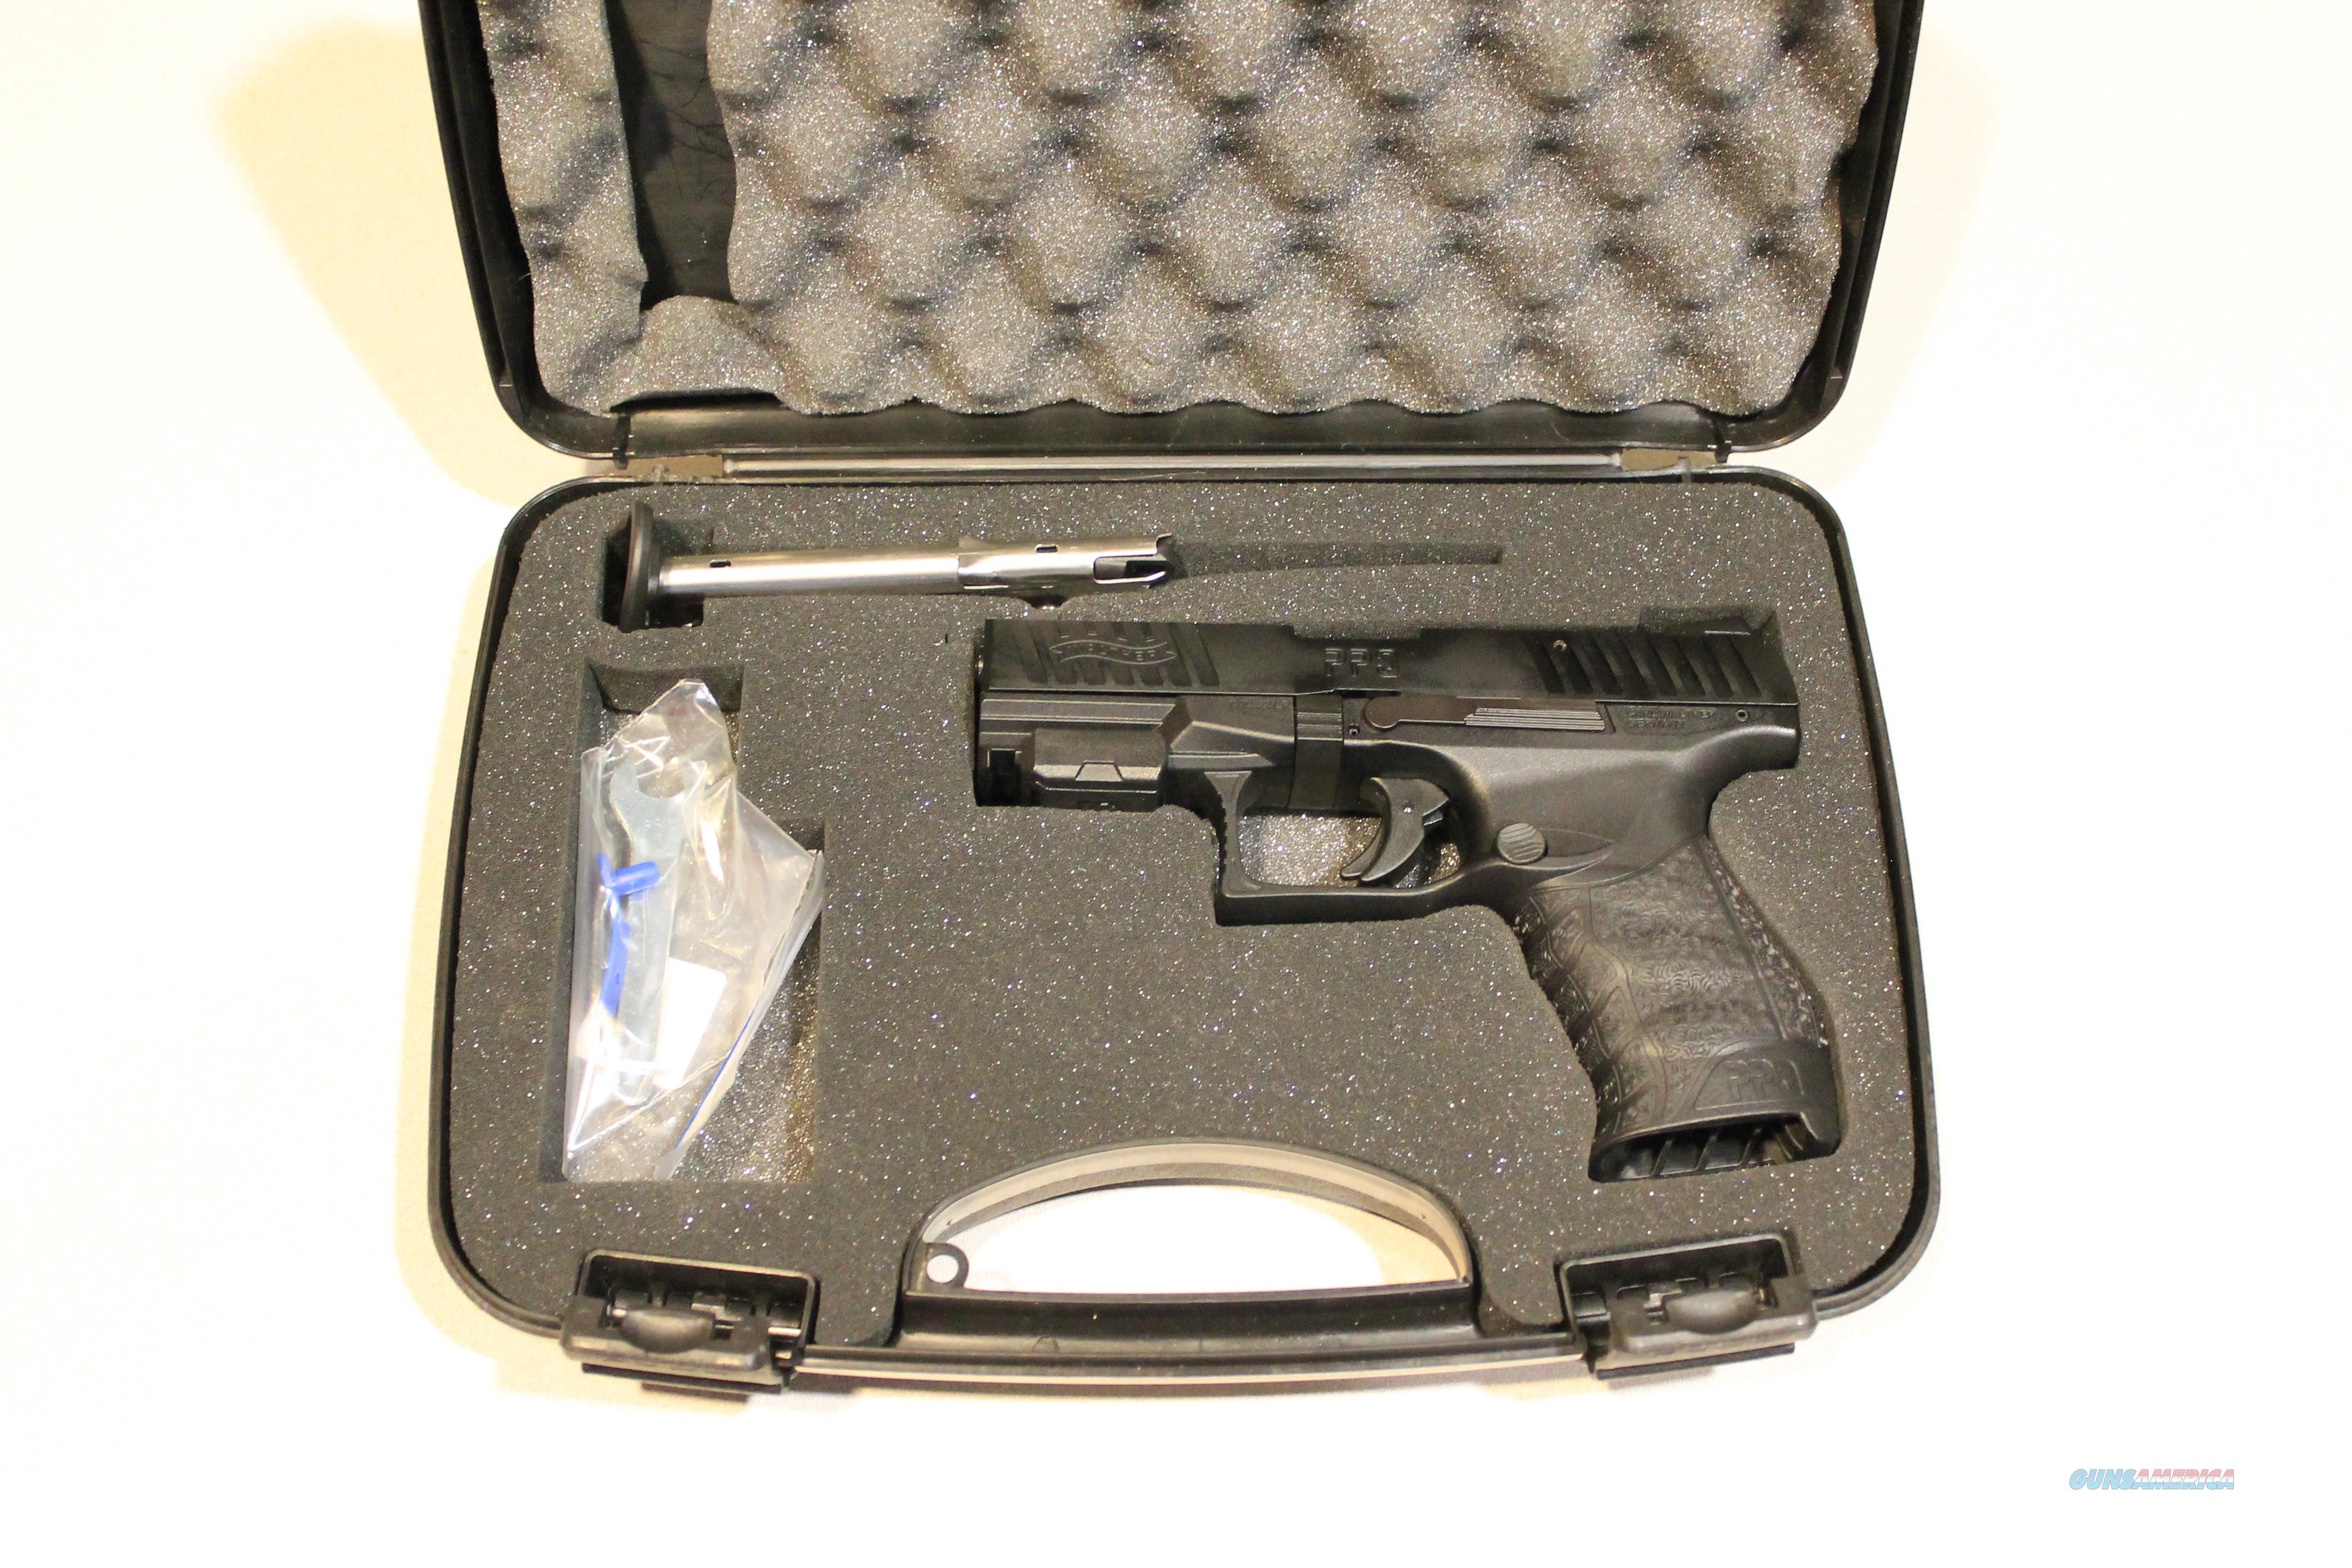 Walther PPQ 22LR Black Rimfire Pistol with 4-inch Barrel  Guns > Pistols > Walther Pistols > Post WWII > P99/PPQ